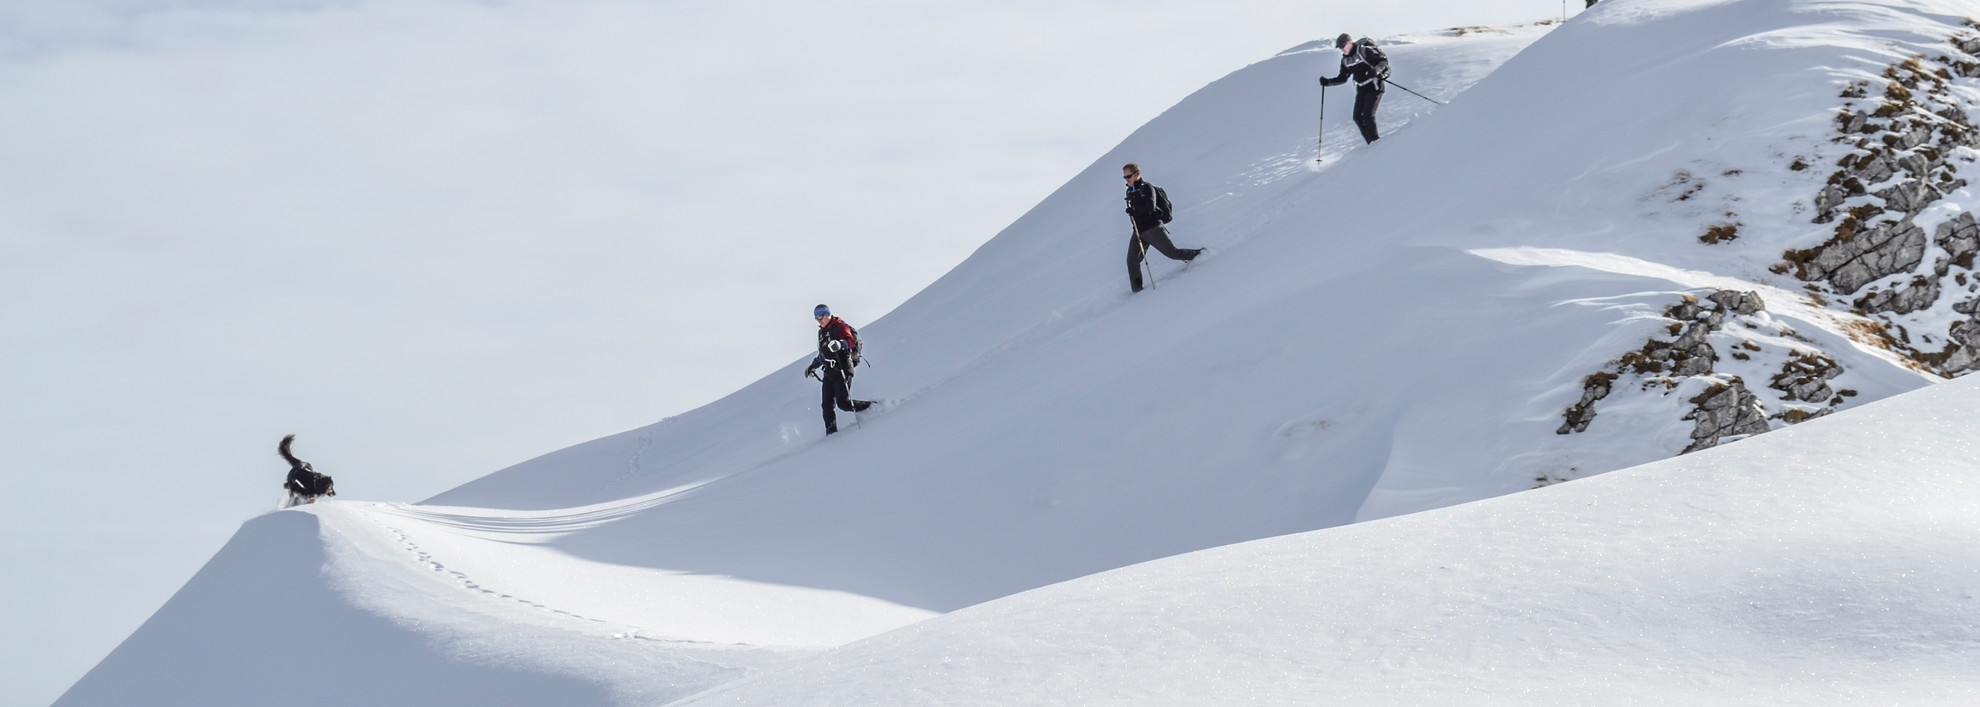 Snowshoeing in the mountains | © Kleinwalsertal Tourismus eGen